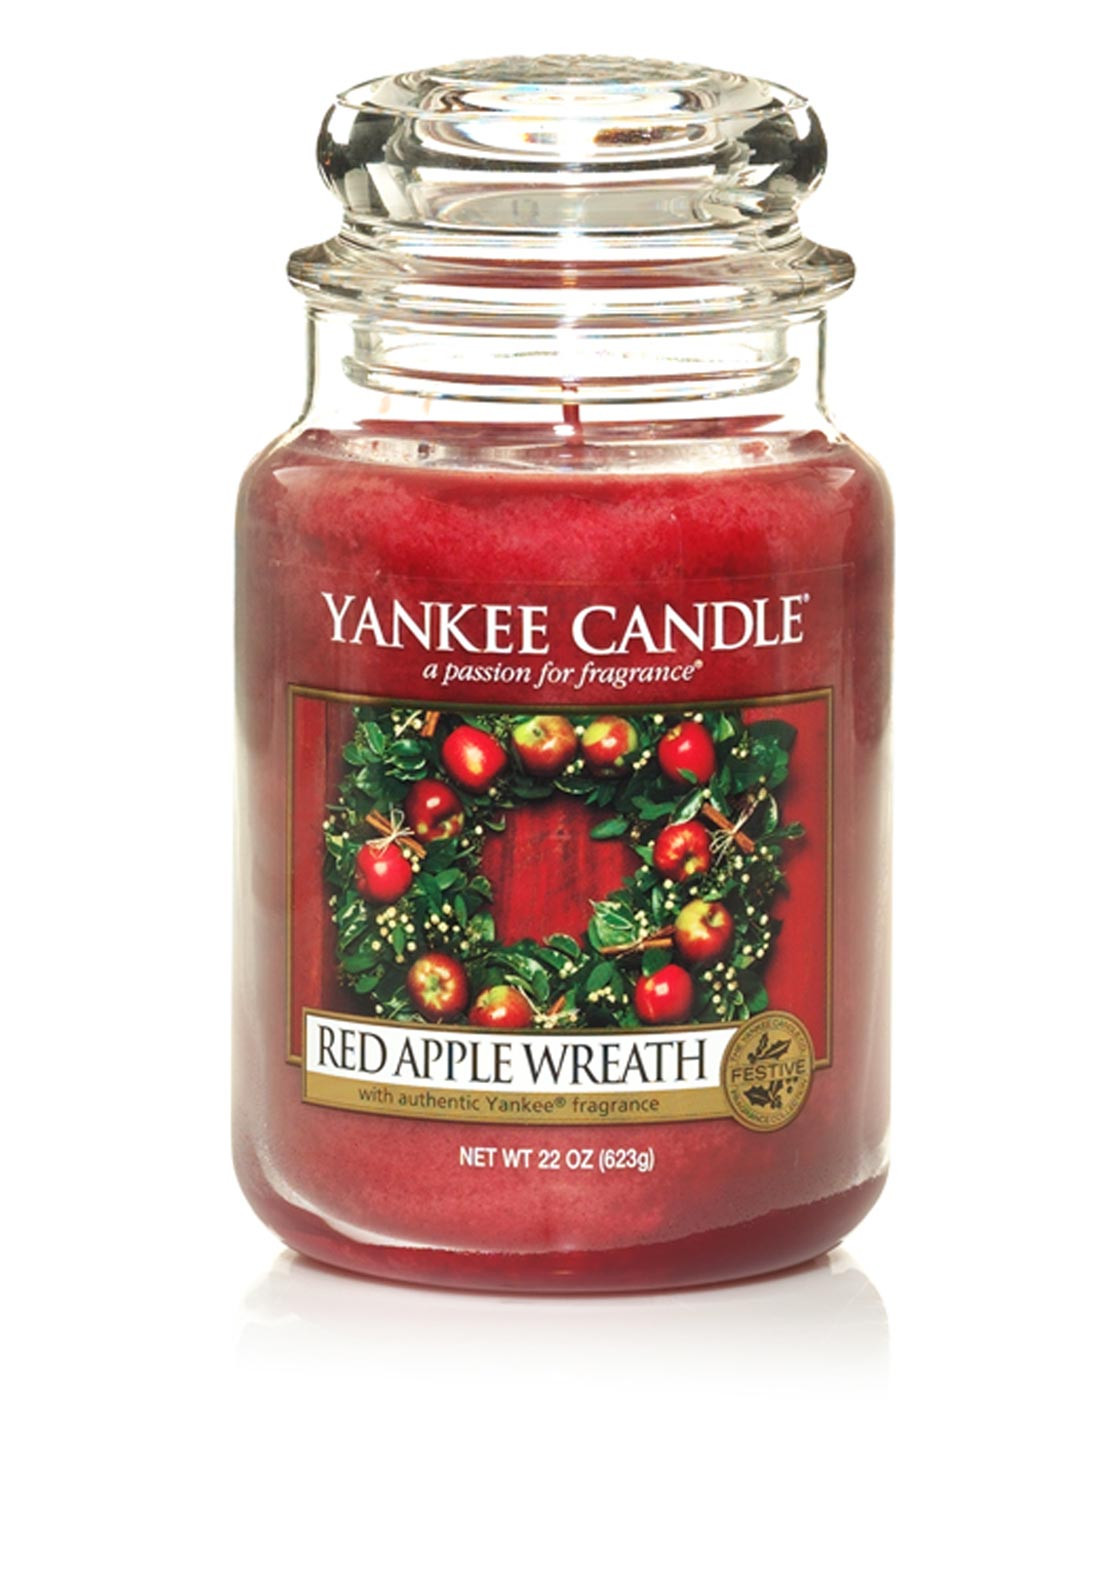 Yankee Candle Large Classic Jar, Red Apple Wreath